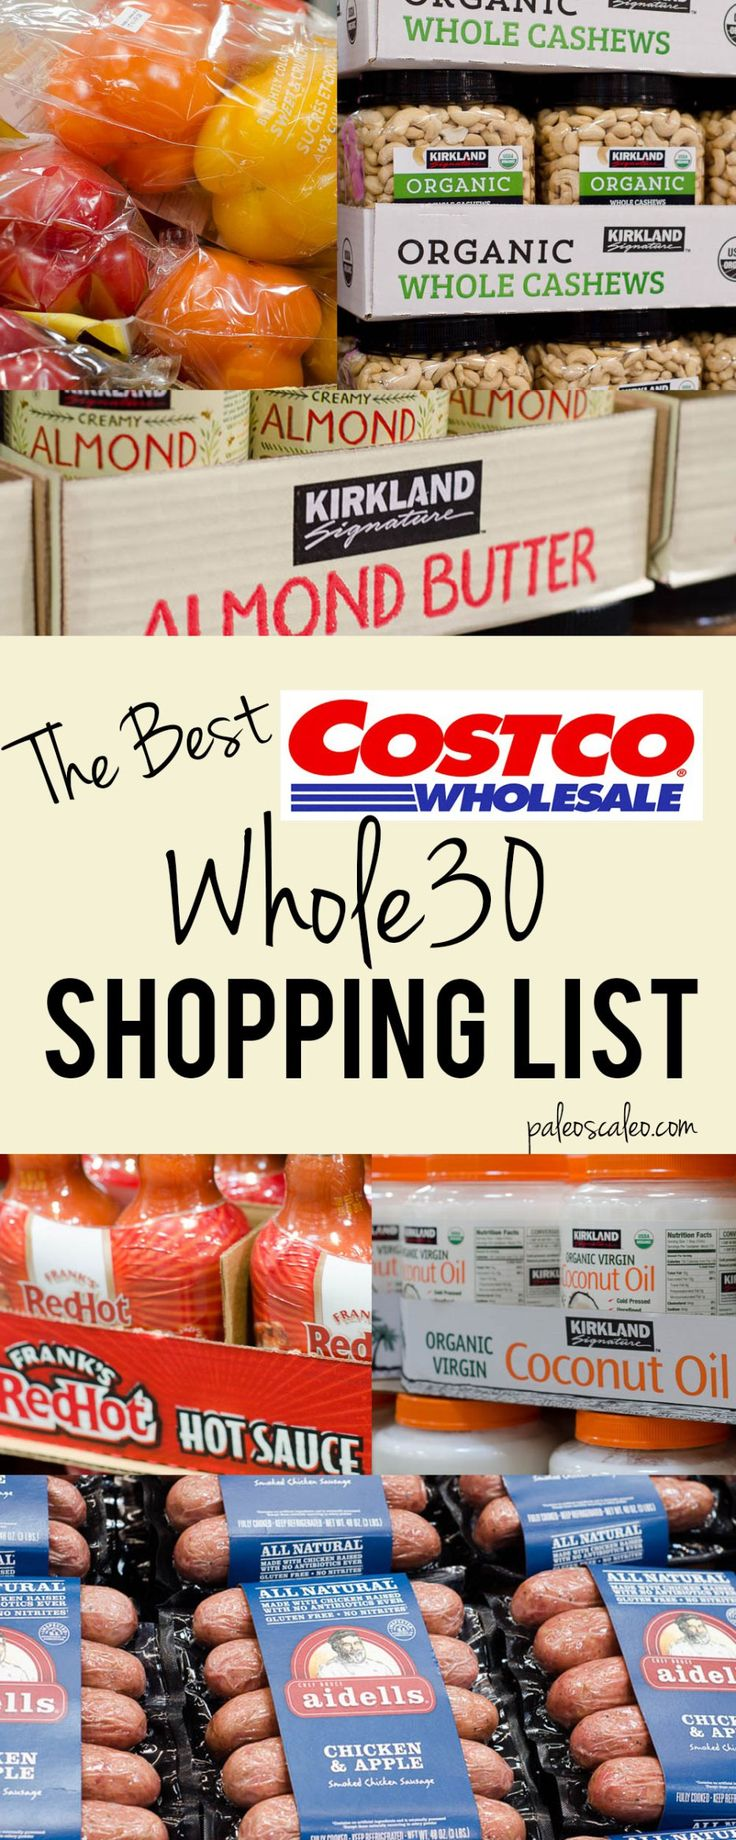 The only Costco Whole30 shopping list you'll ever need!   PaleoScaleo.com